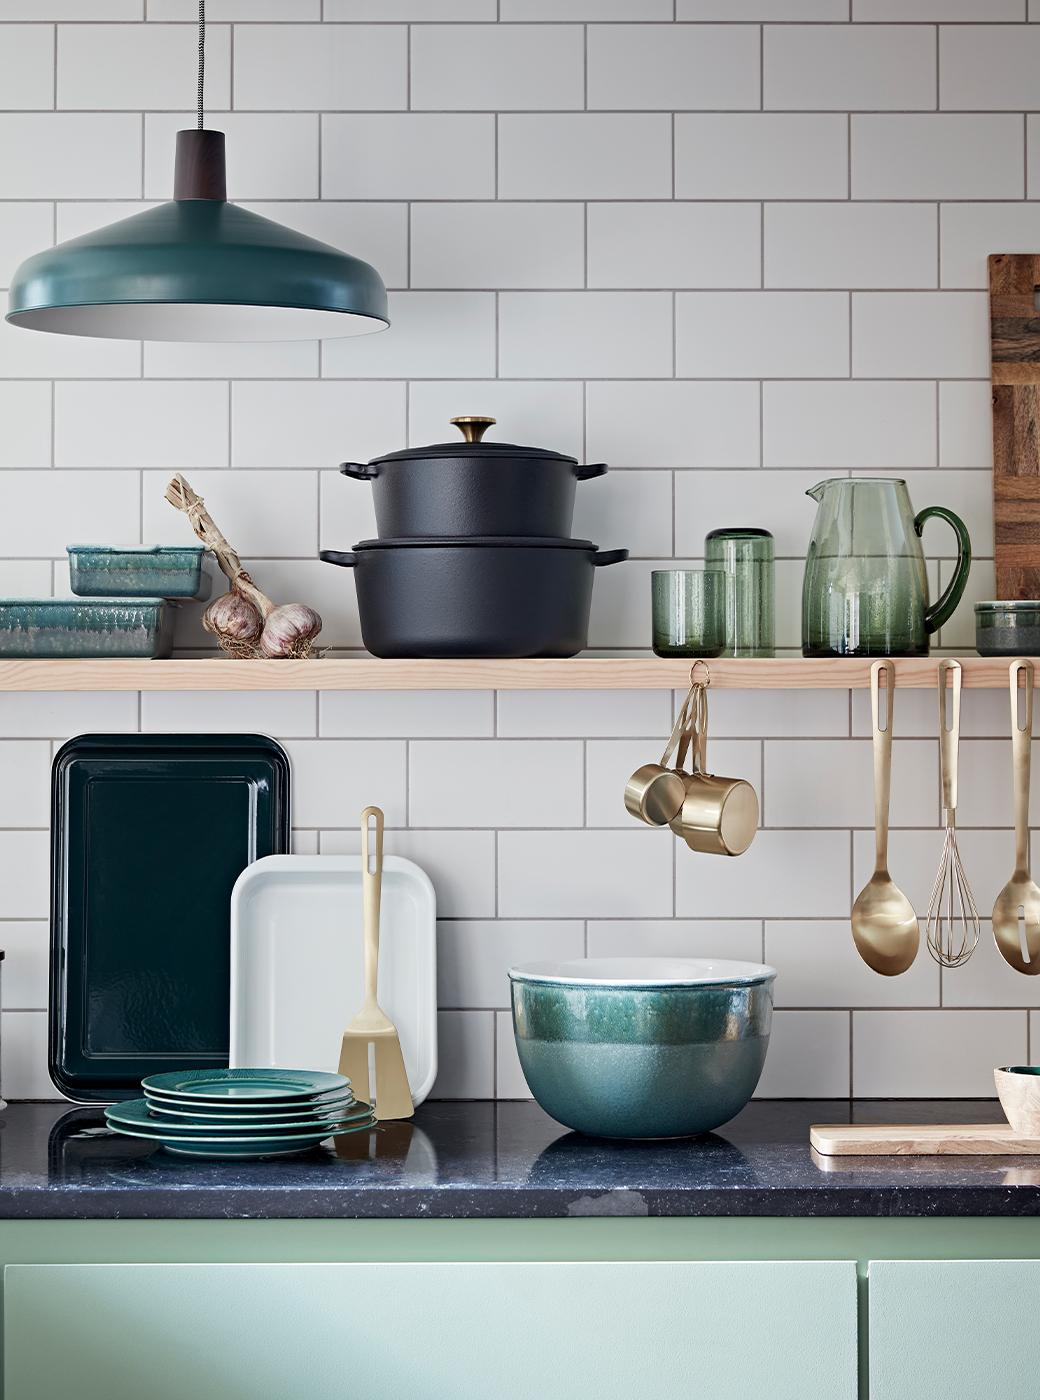 Teal and green kitchen with kitchen accessories.